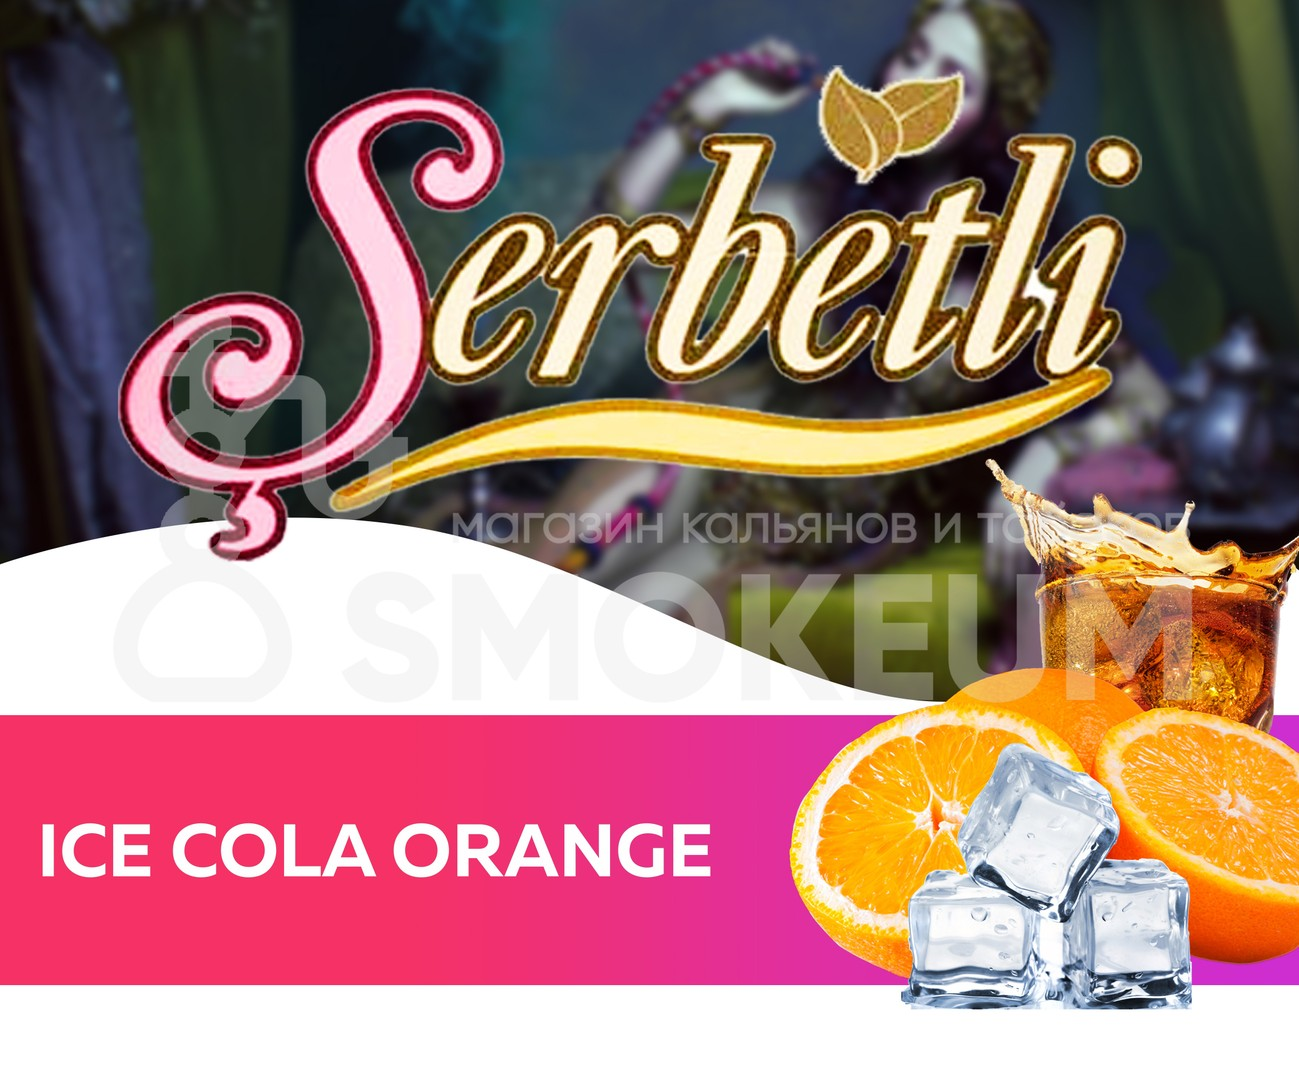 Табак Serbetli - Ice Cola Orange (Ледяная Кола Апельсин) 50 гр